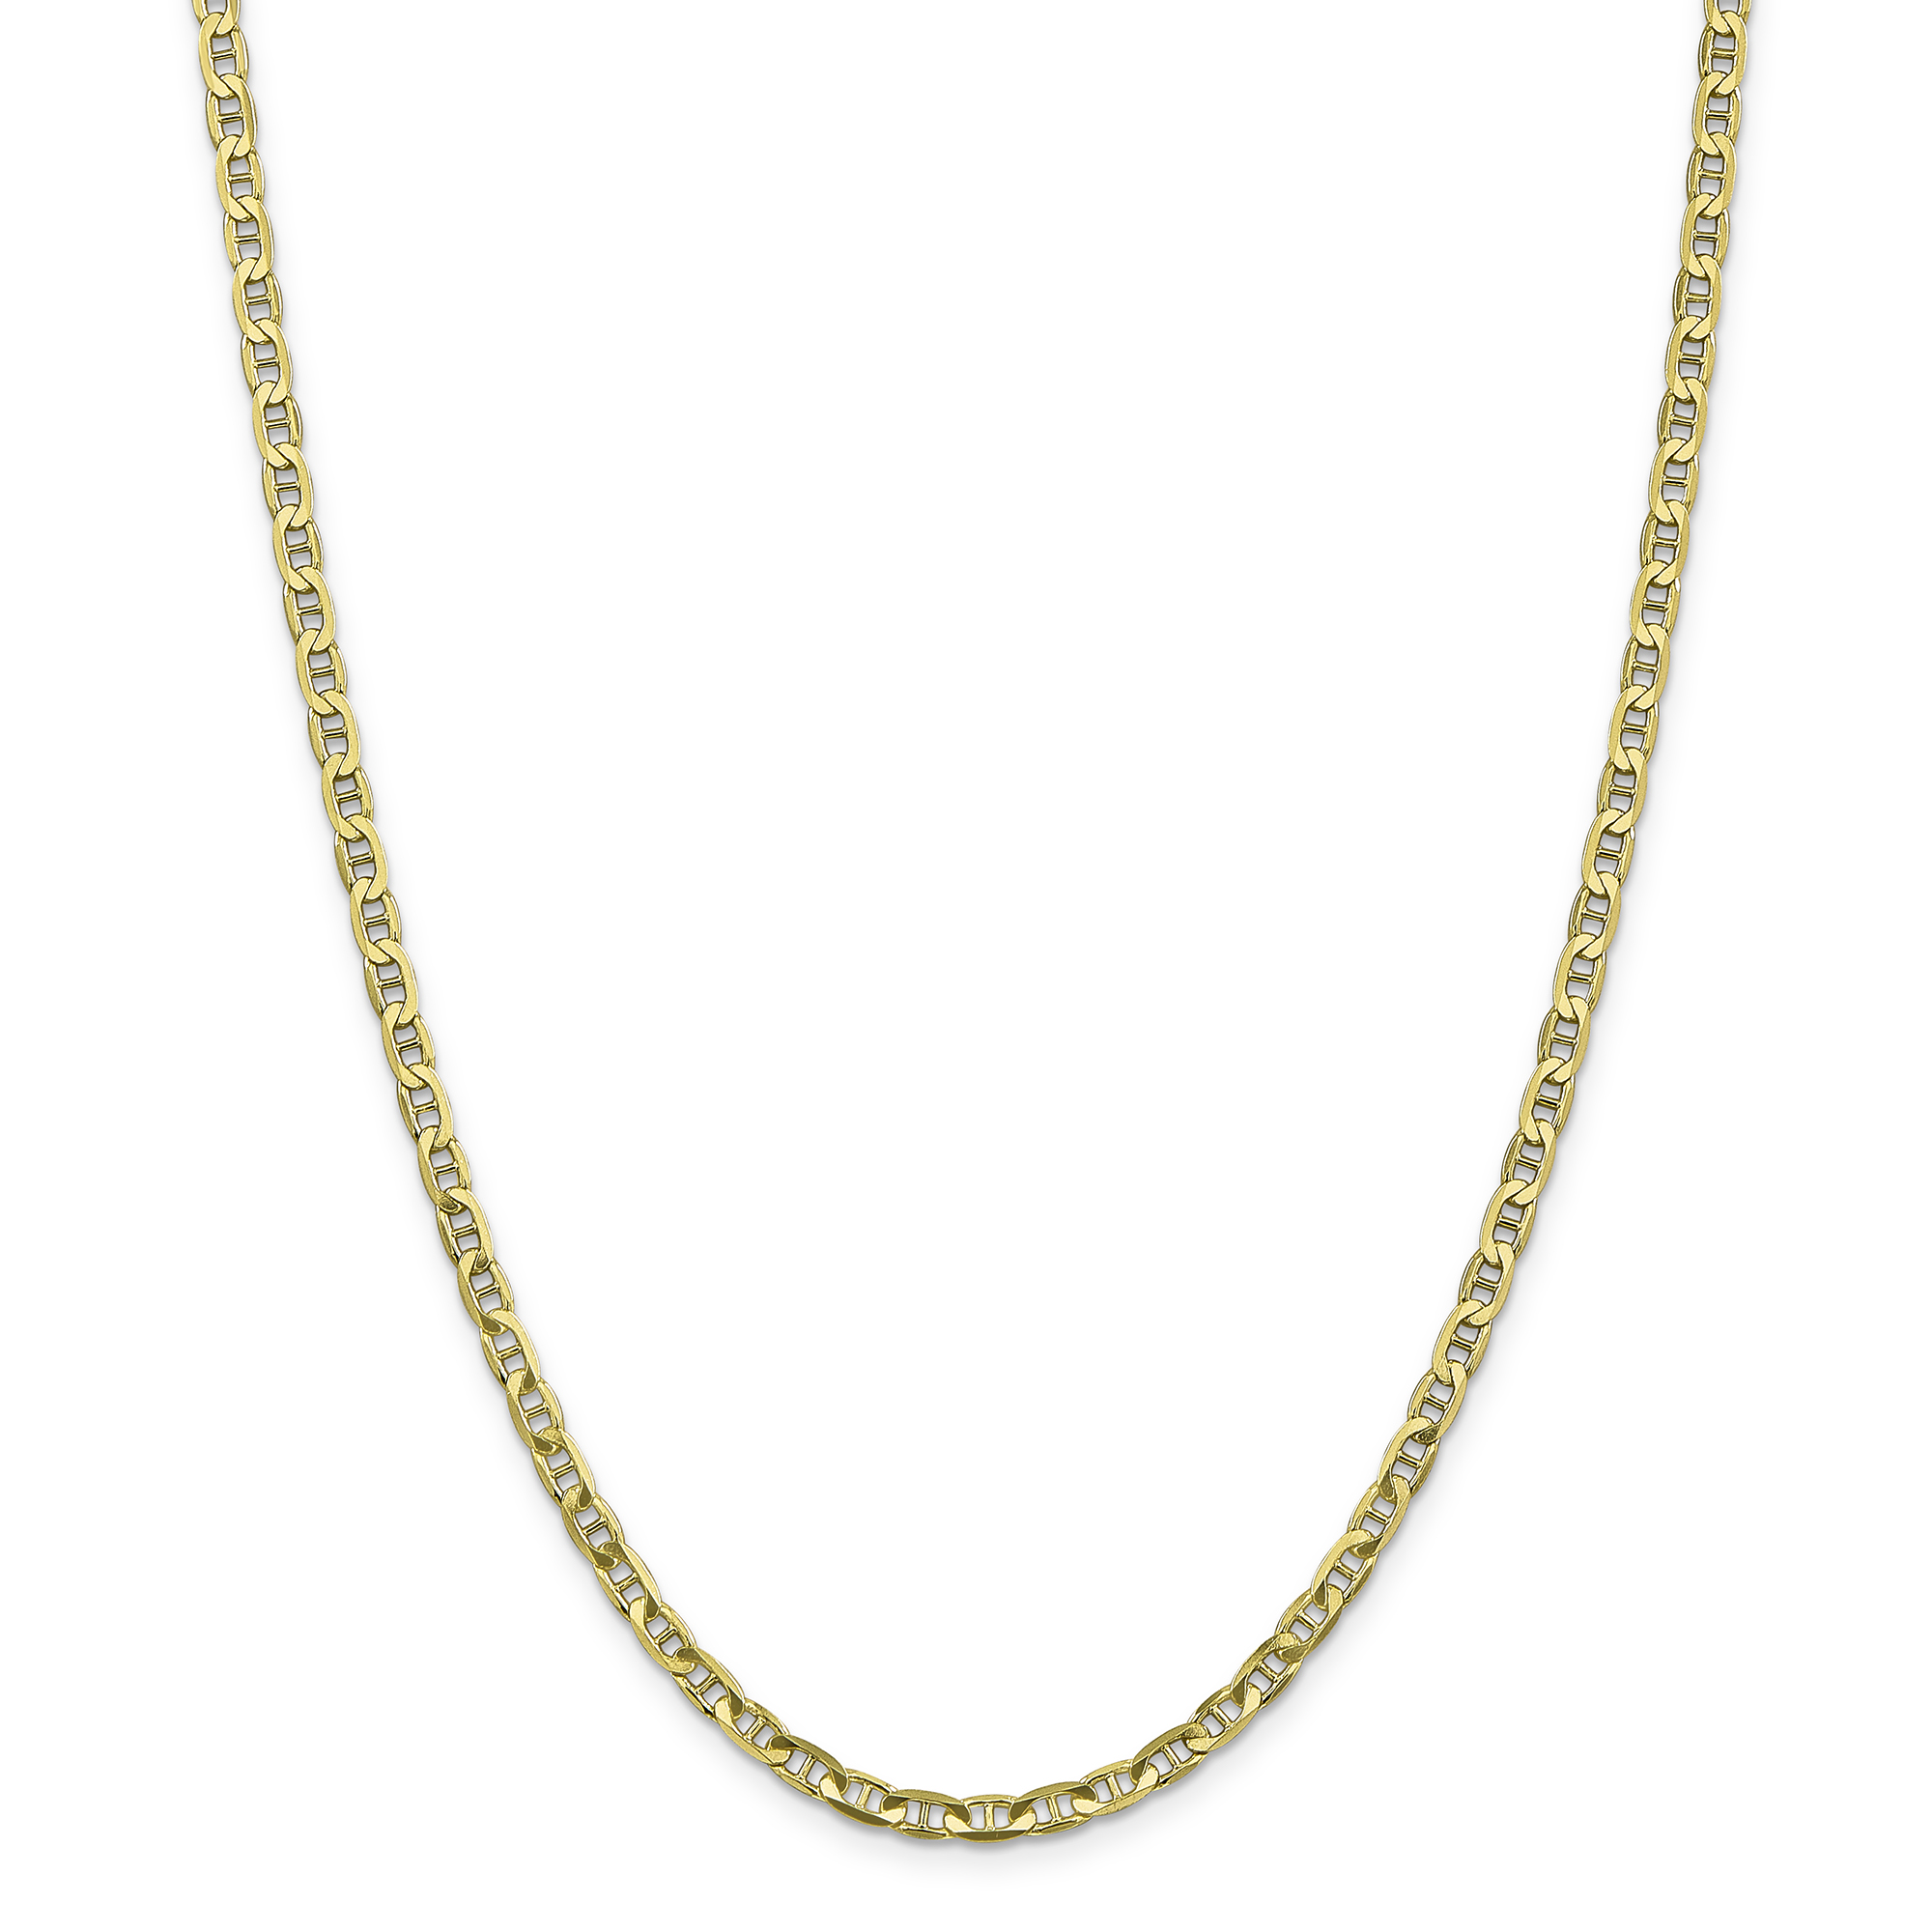 10K Yellow Gold 3.75mm Concave Anchor Chain 18 Inch - image 6 of 6